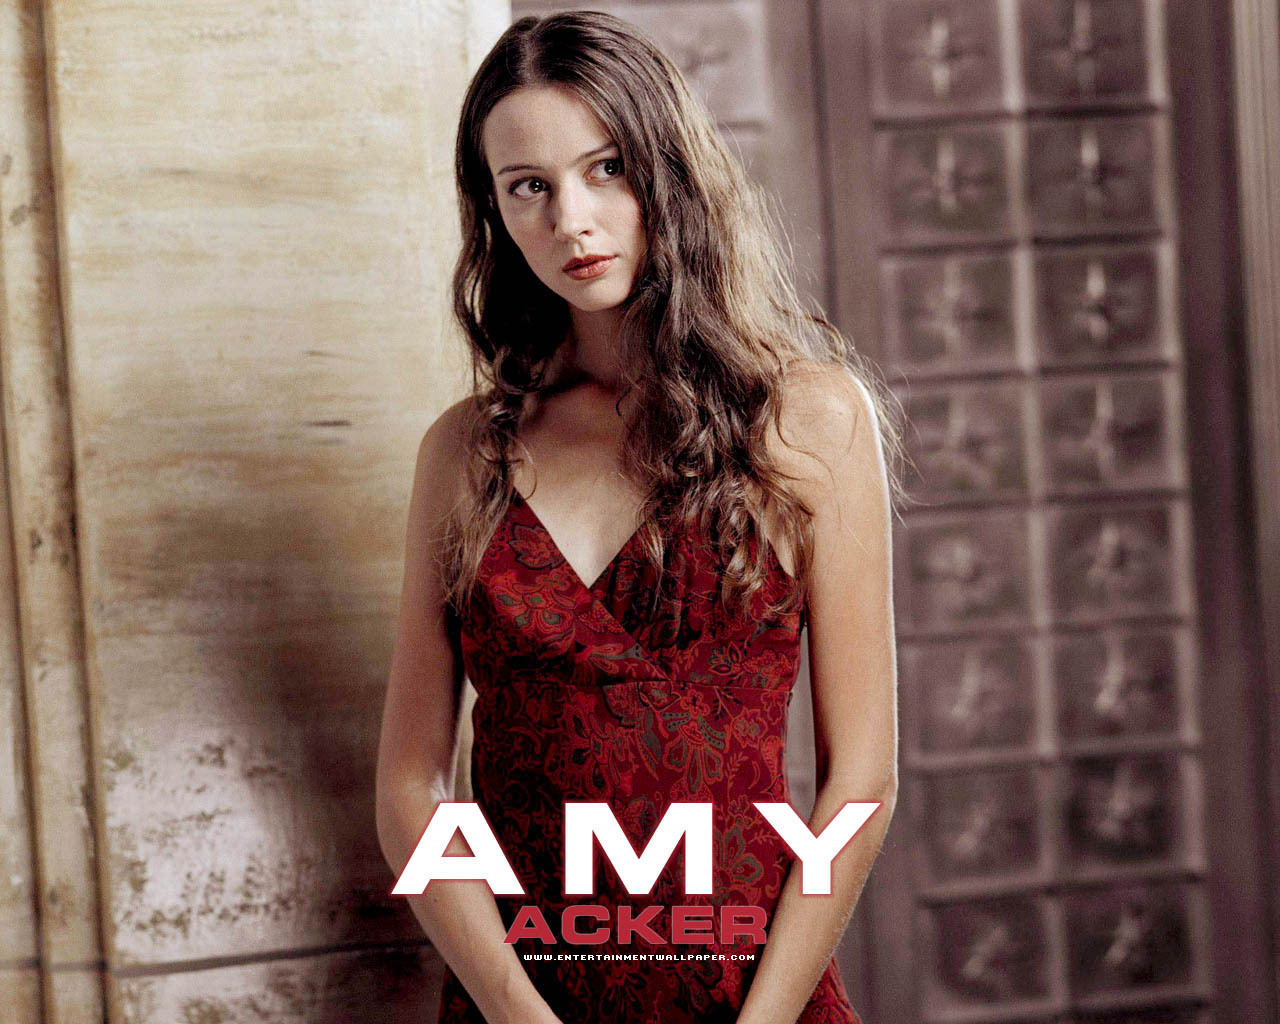 1280x1024 - Amy Acker Wallpapers 15